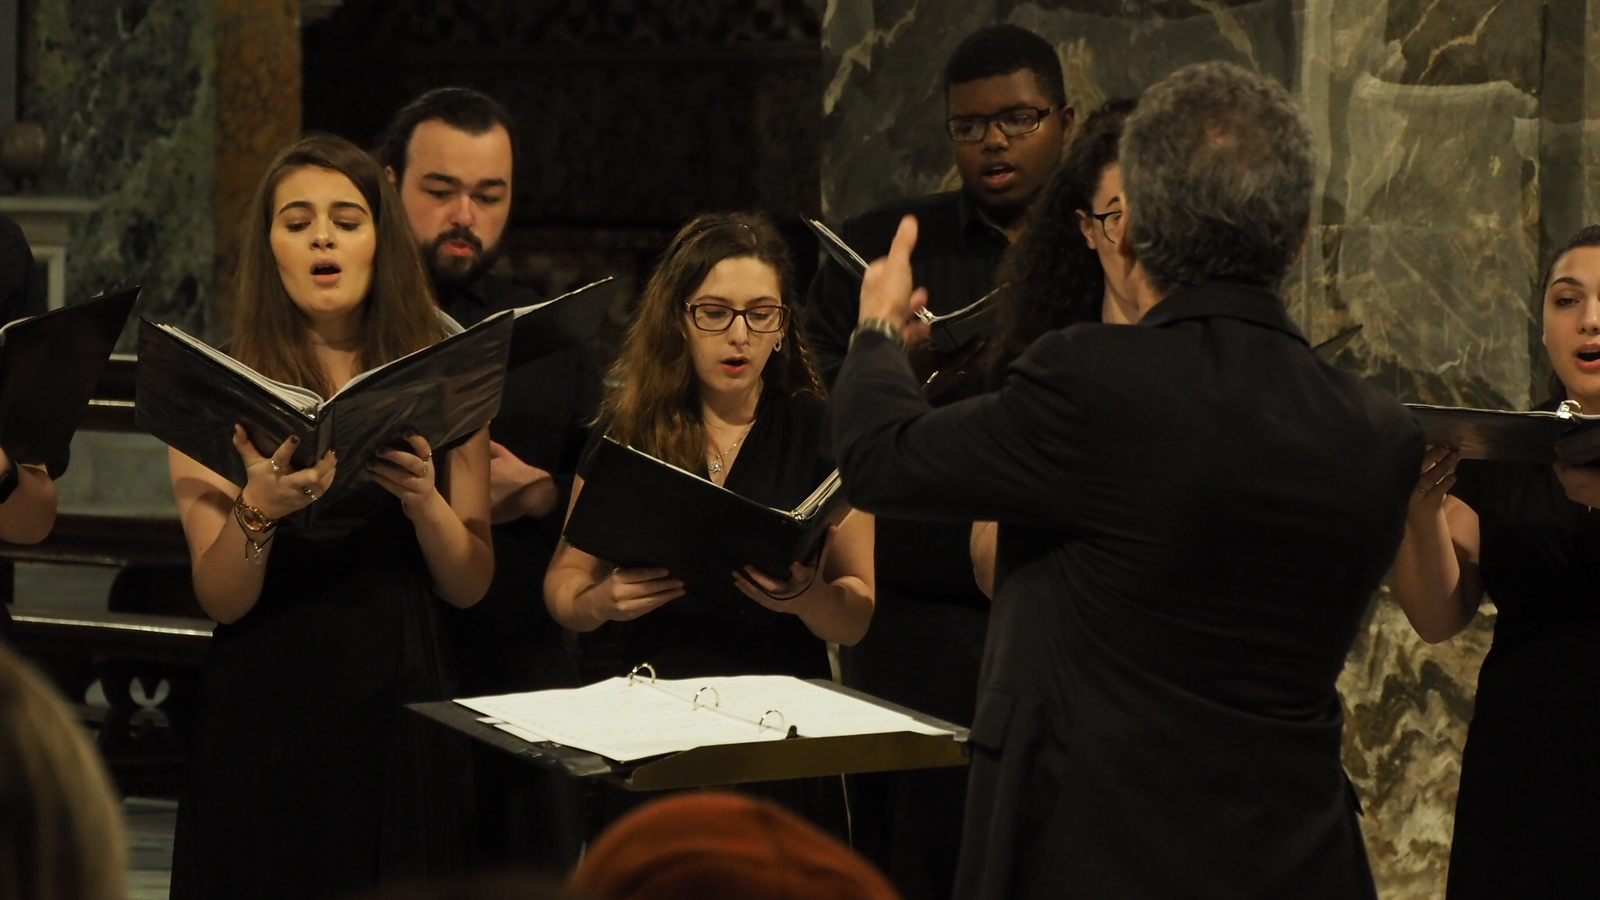 The UConn Collegium Musicum performs in Cheiza Santo Spirito in Florence